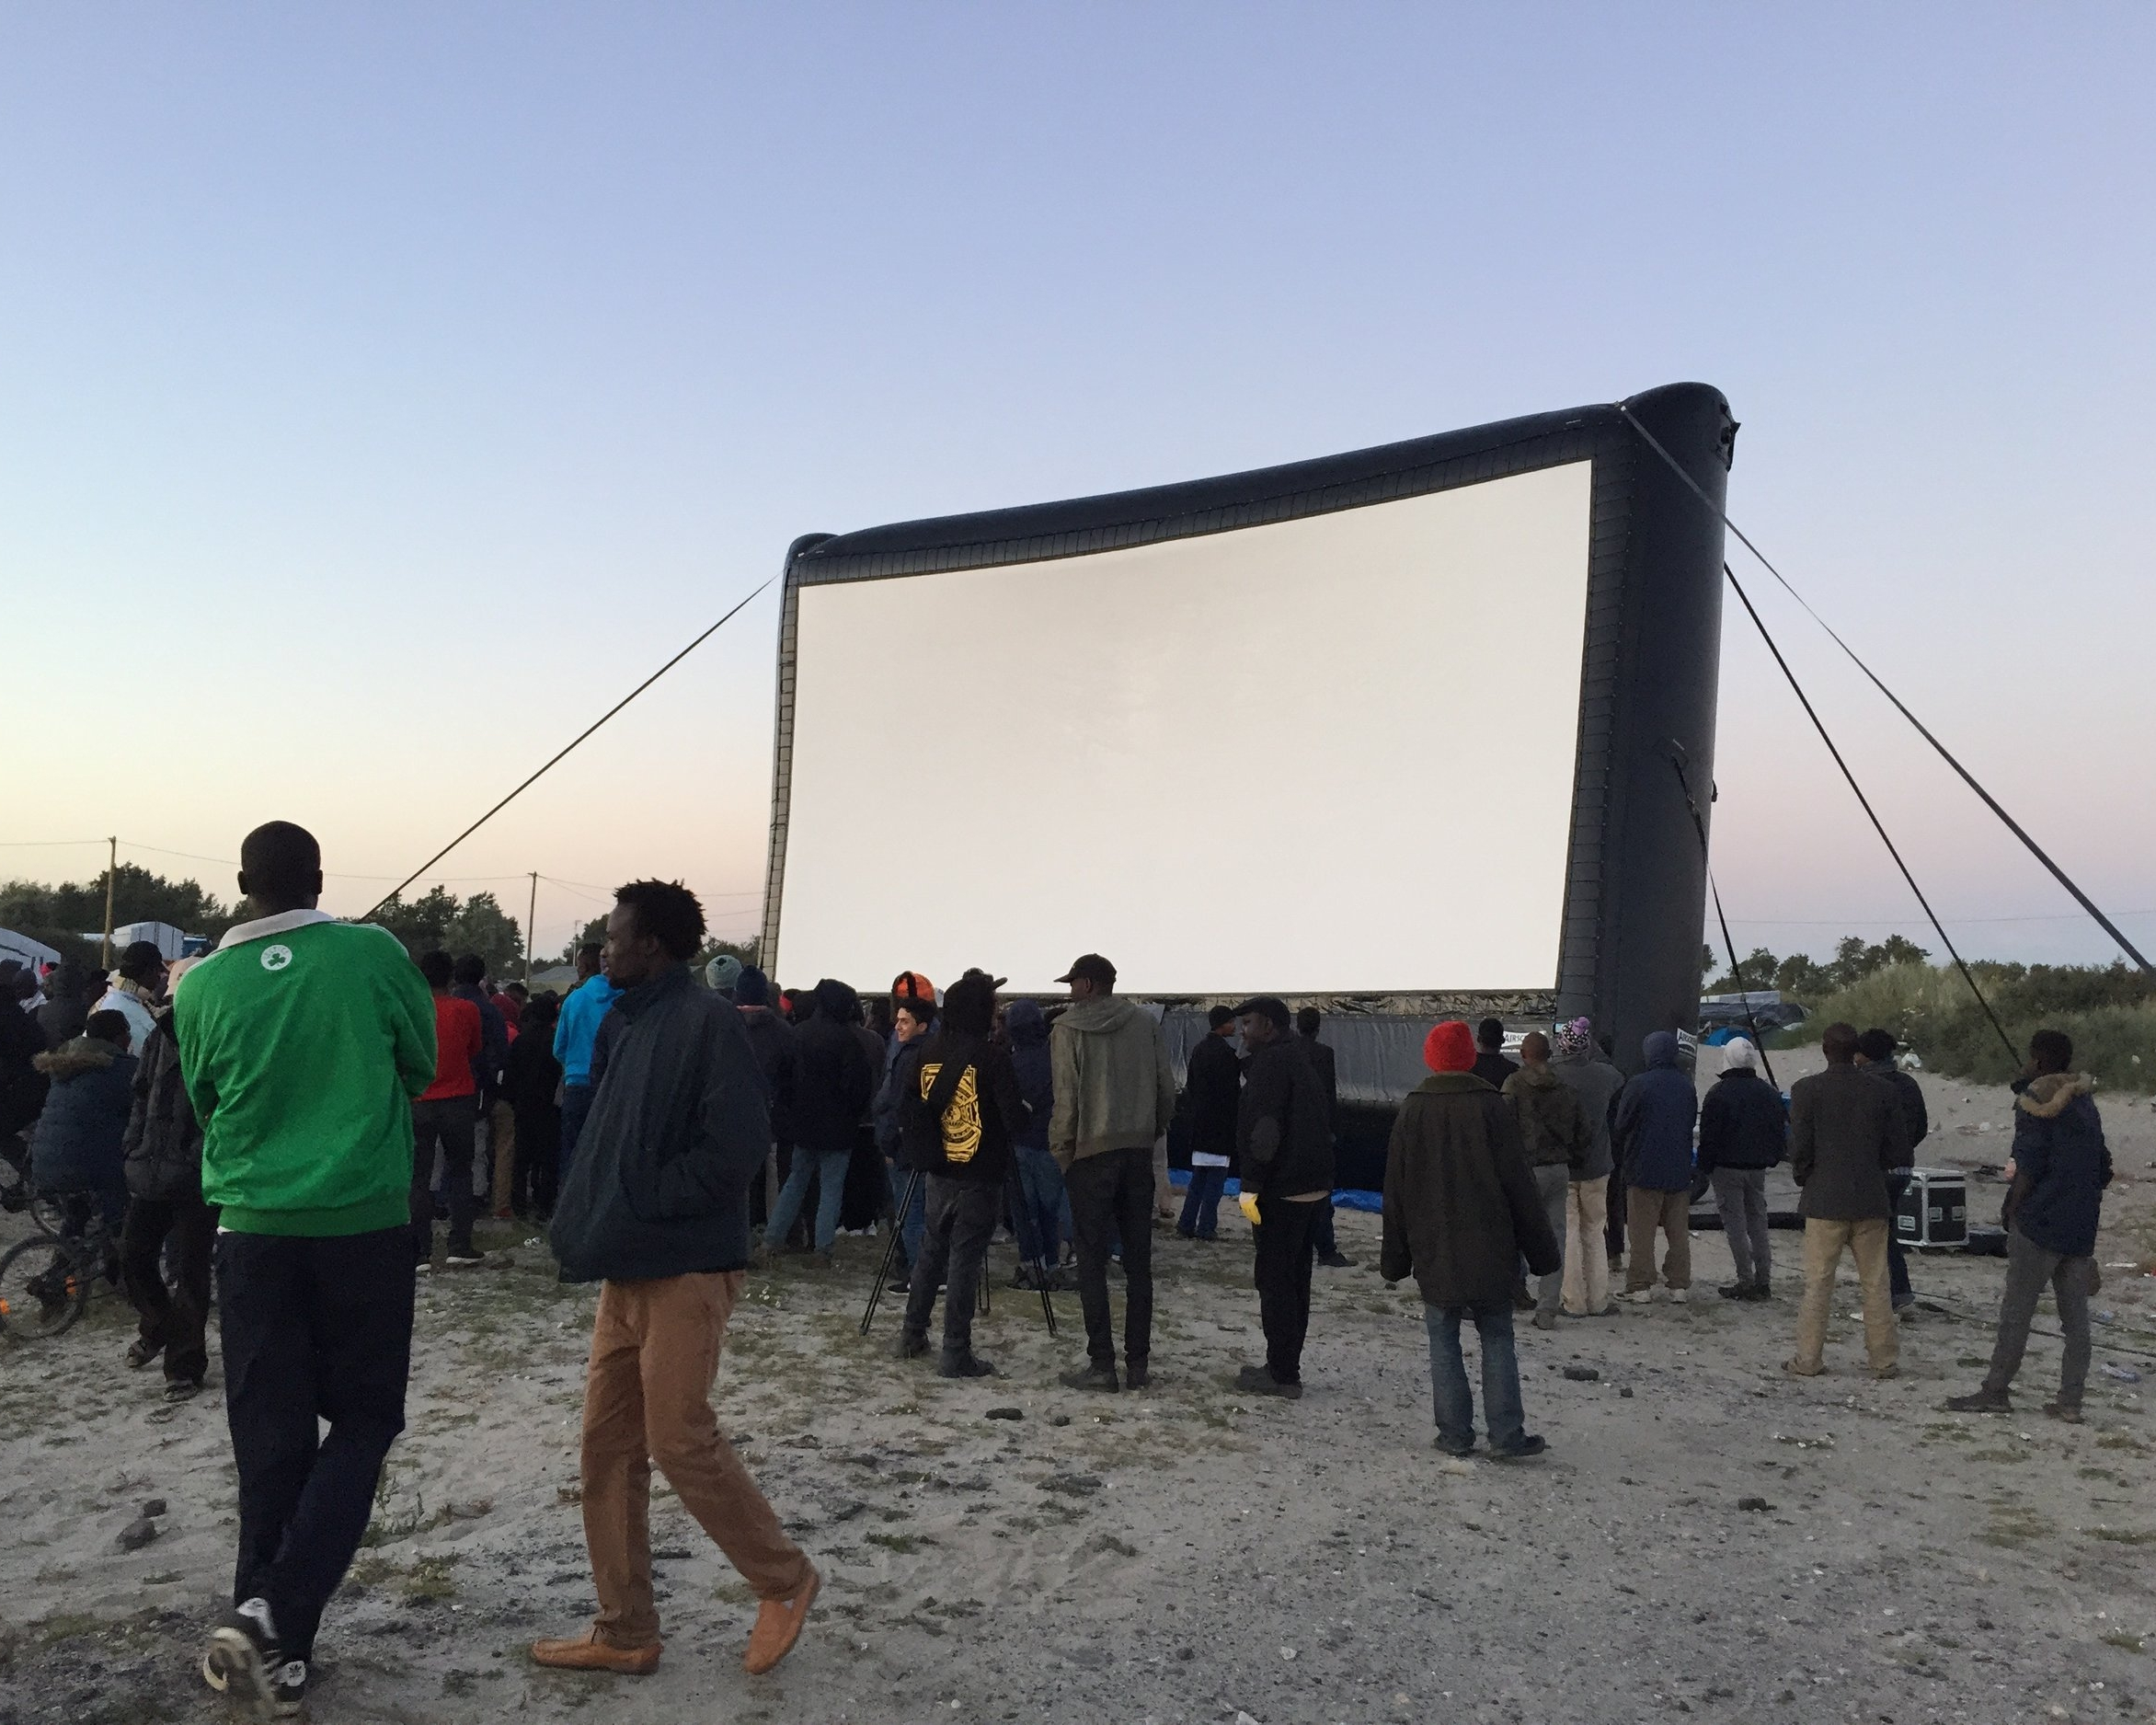 Pop up cinema -